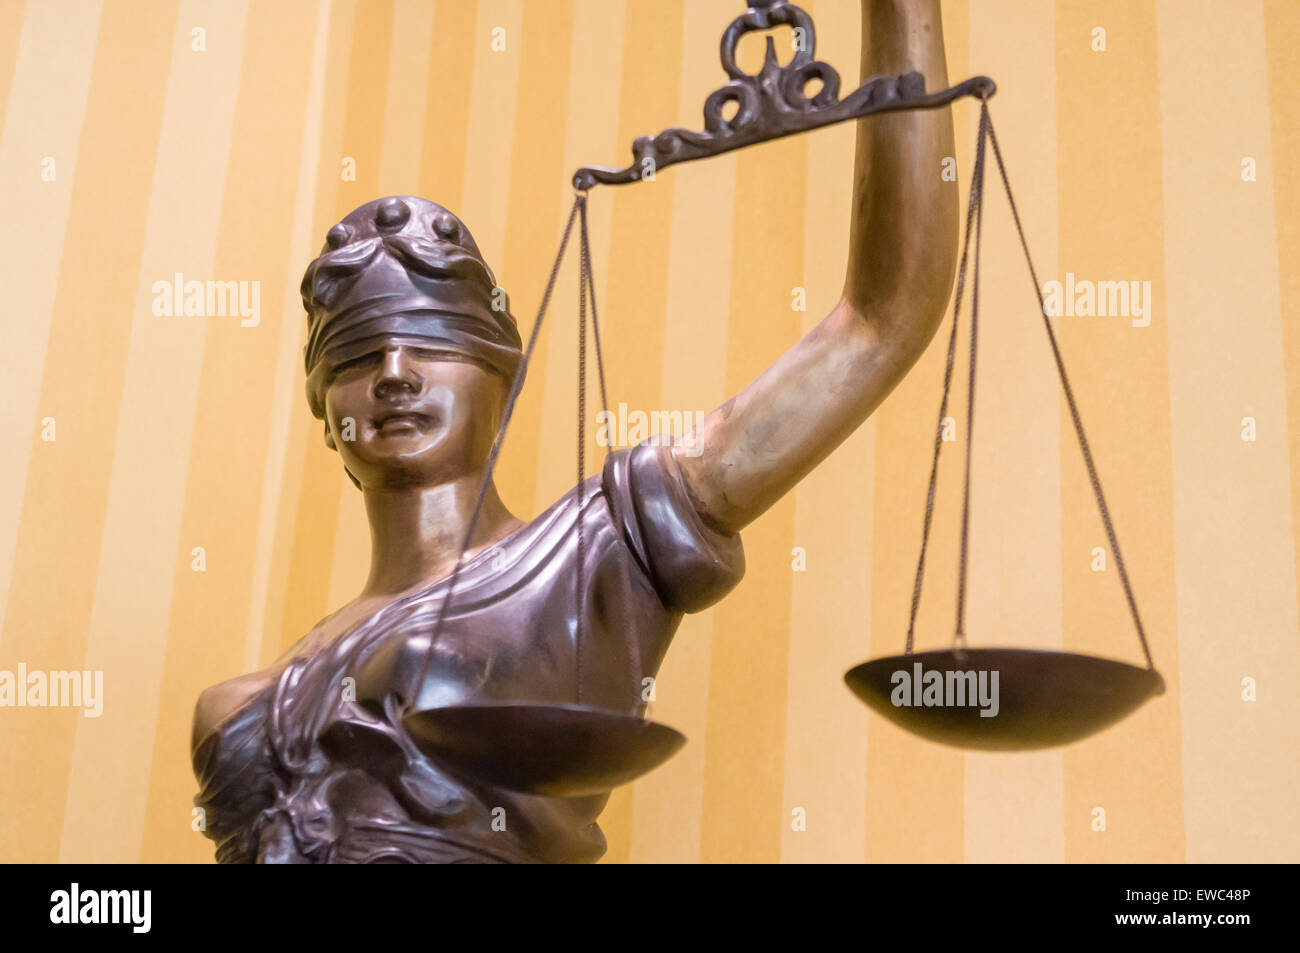 Bronze statue of 'Lady Justice', blindfolded and holding a pair of scales - Stock Image